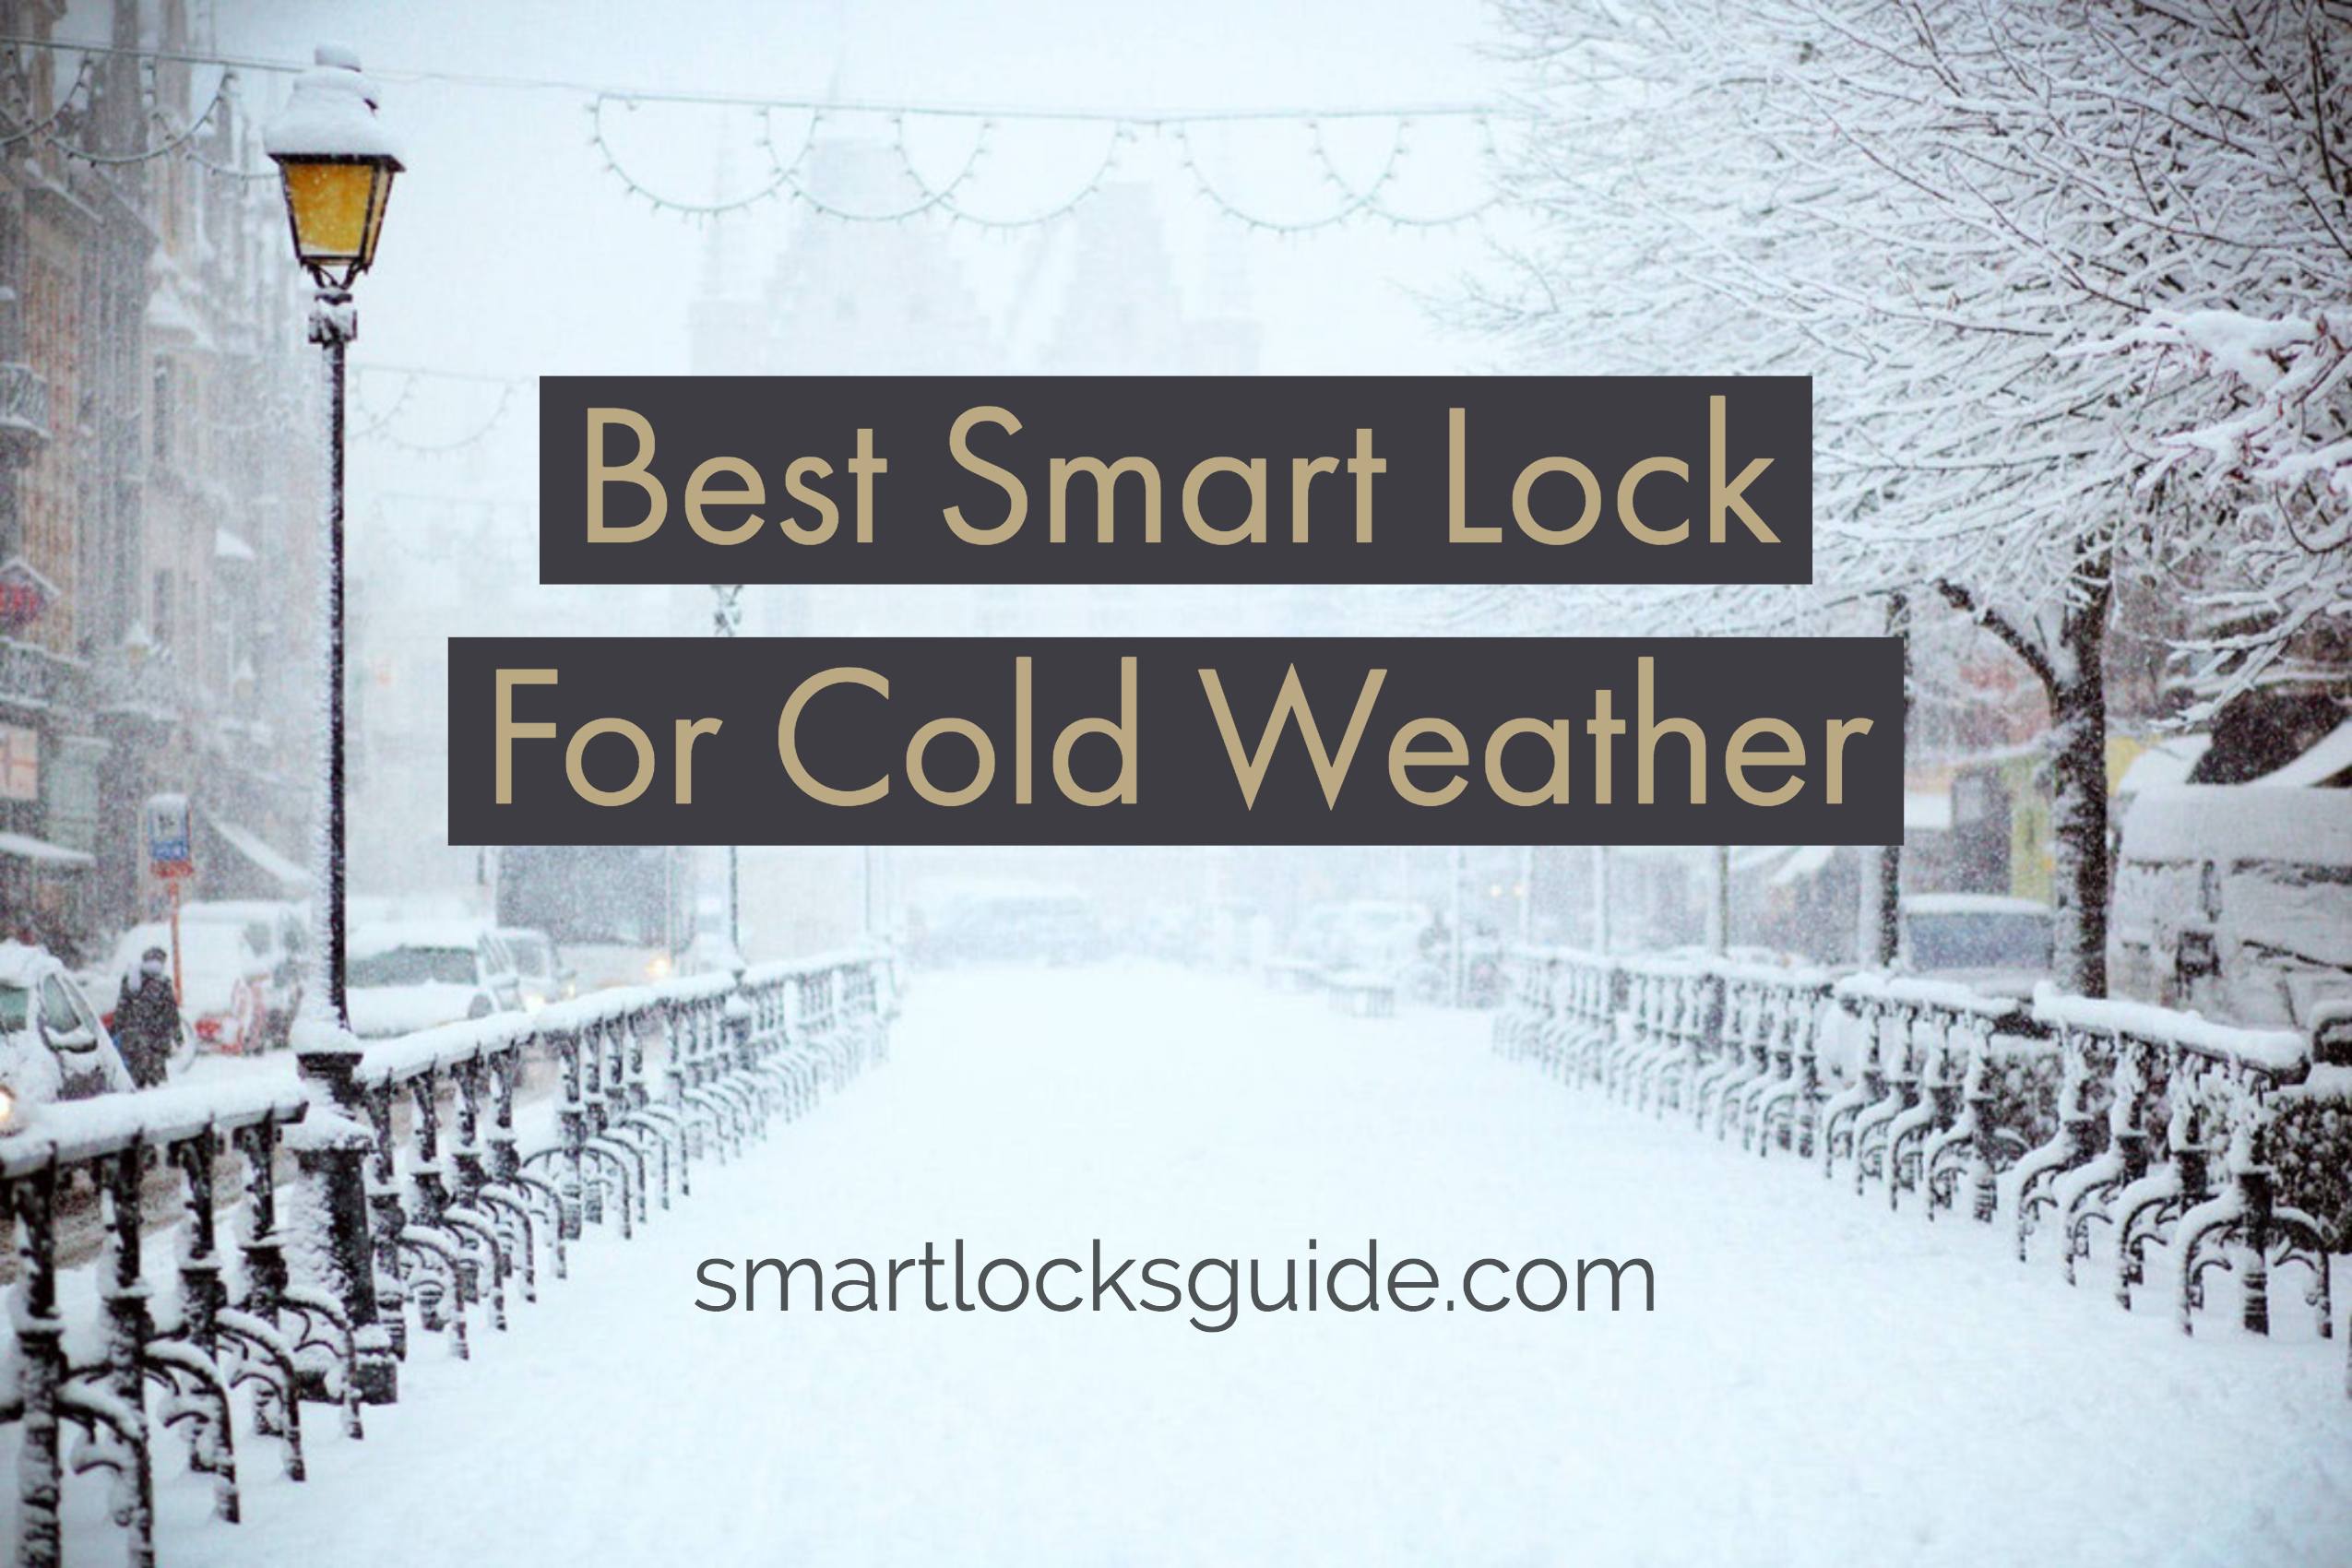 Best Smart Lock For Cold Weather